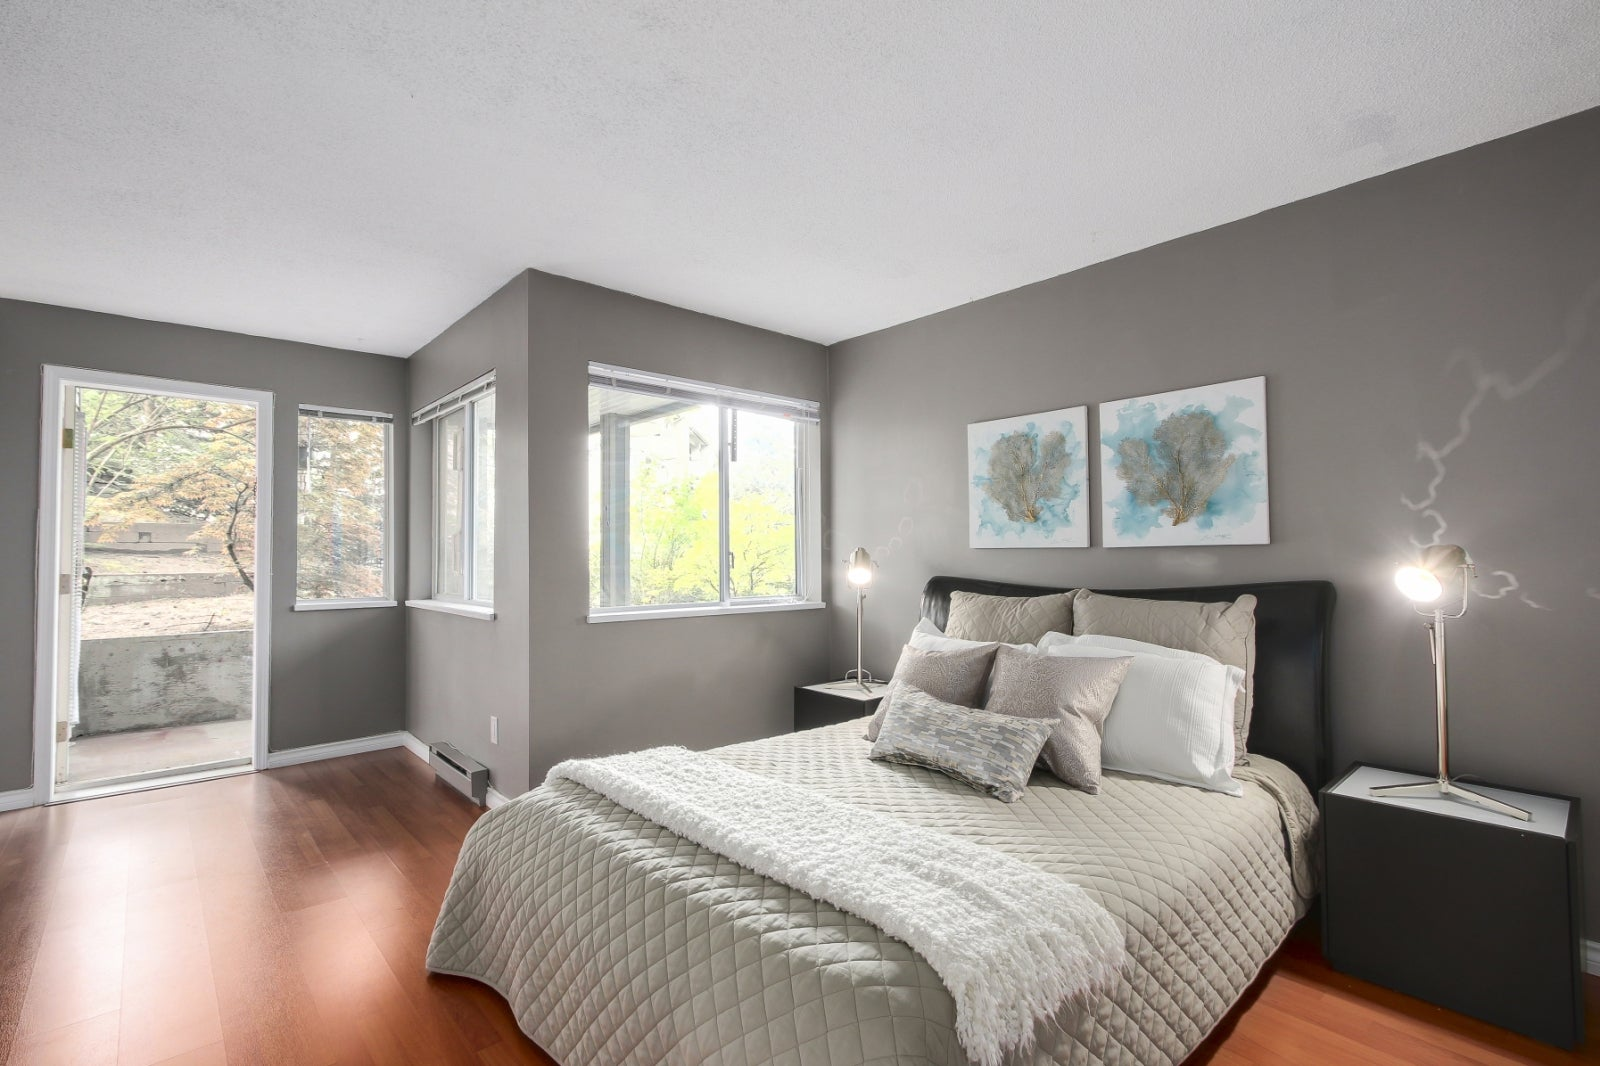 9 7345 SANDBORNE AVENUE - South Slope Townhouse for sale, 2 Bedrooms (R2165161) #14